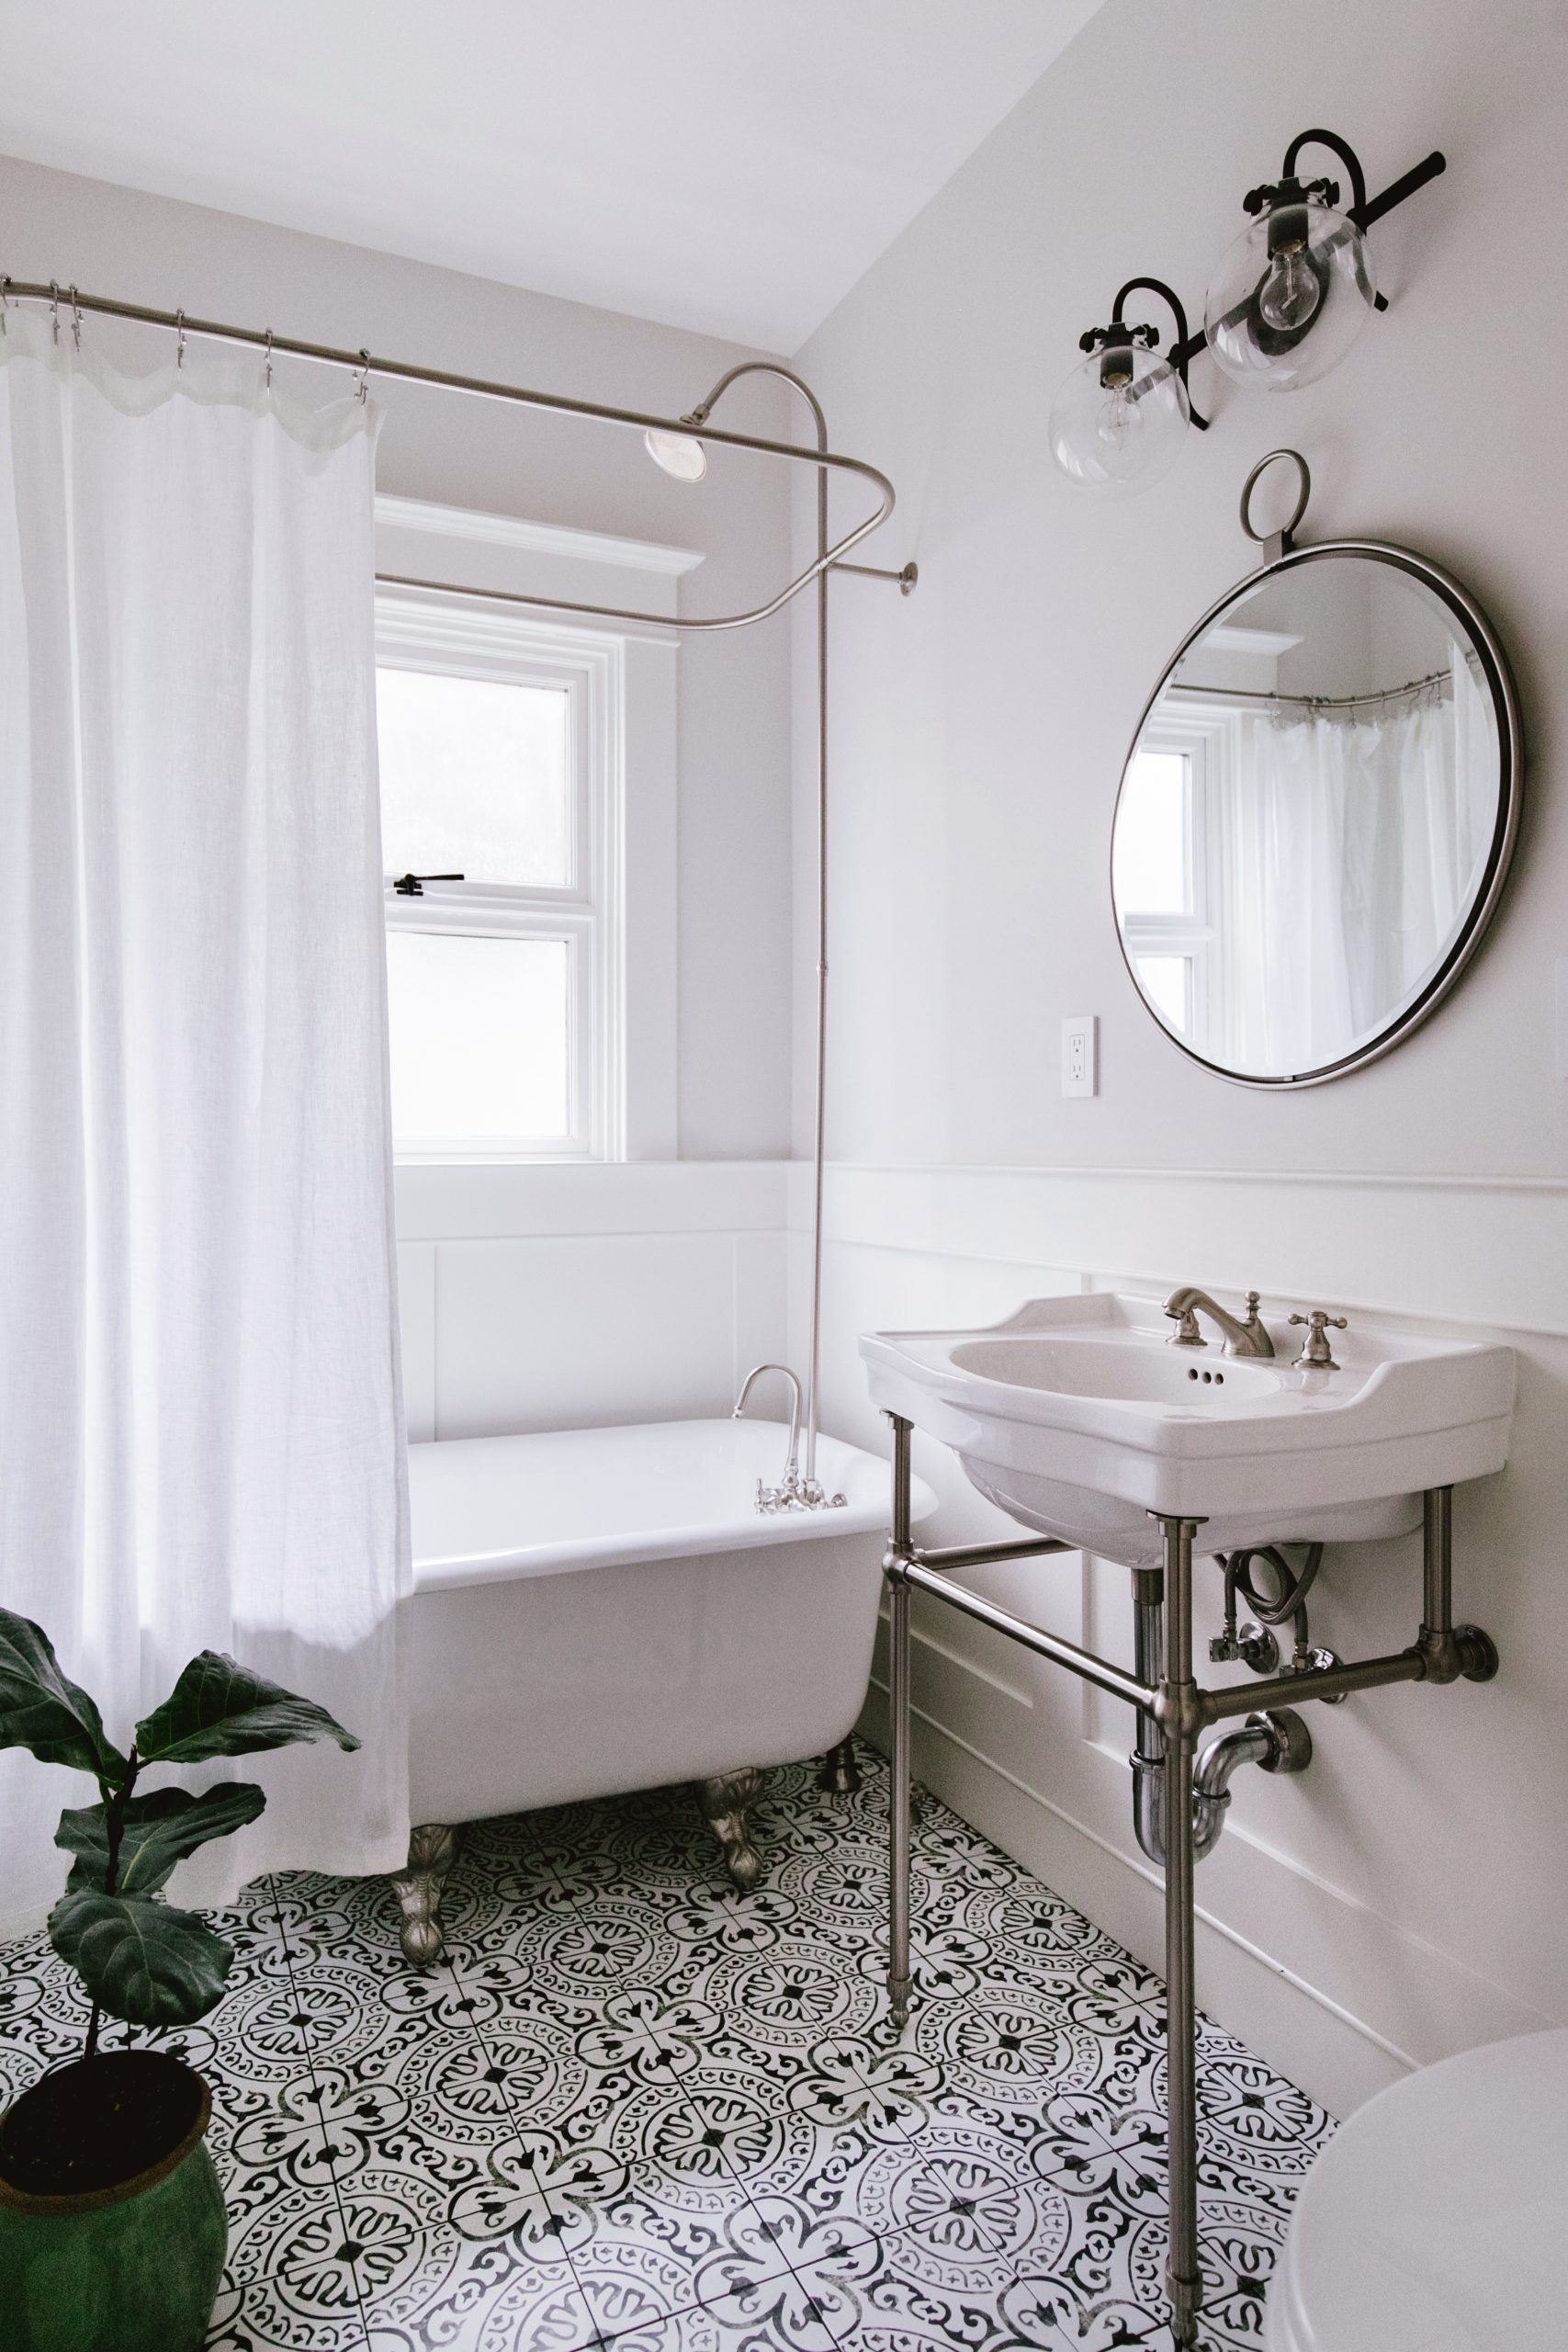 Vintage white bathroom with black and white tile